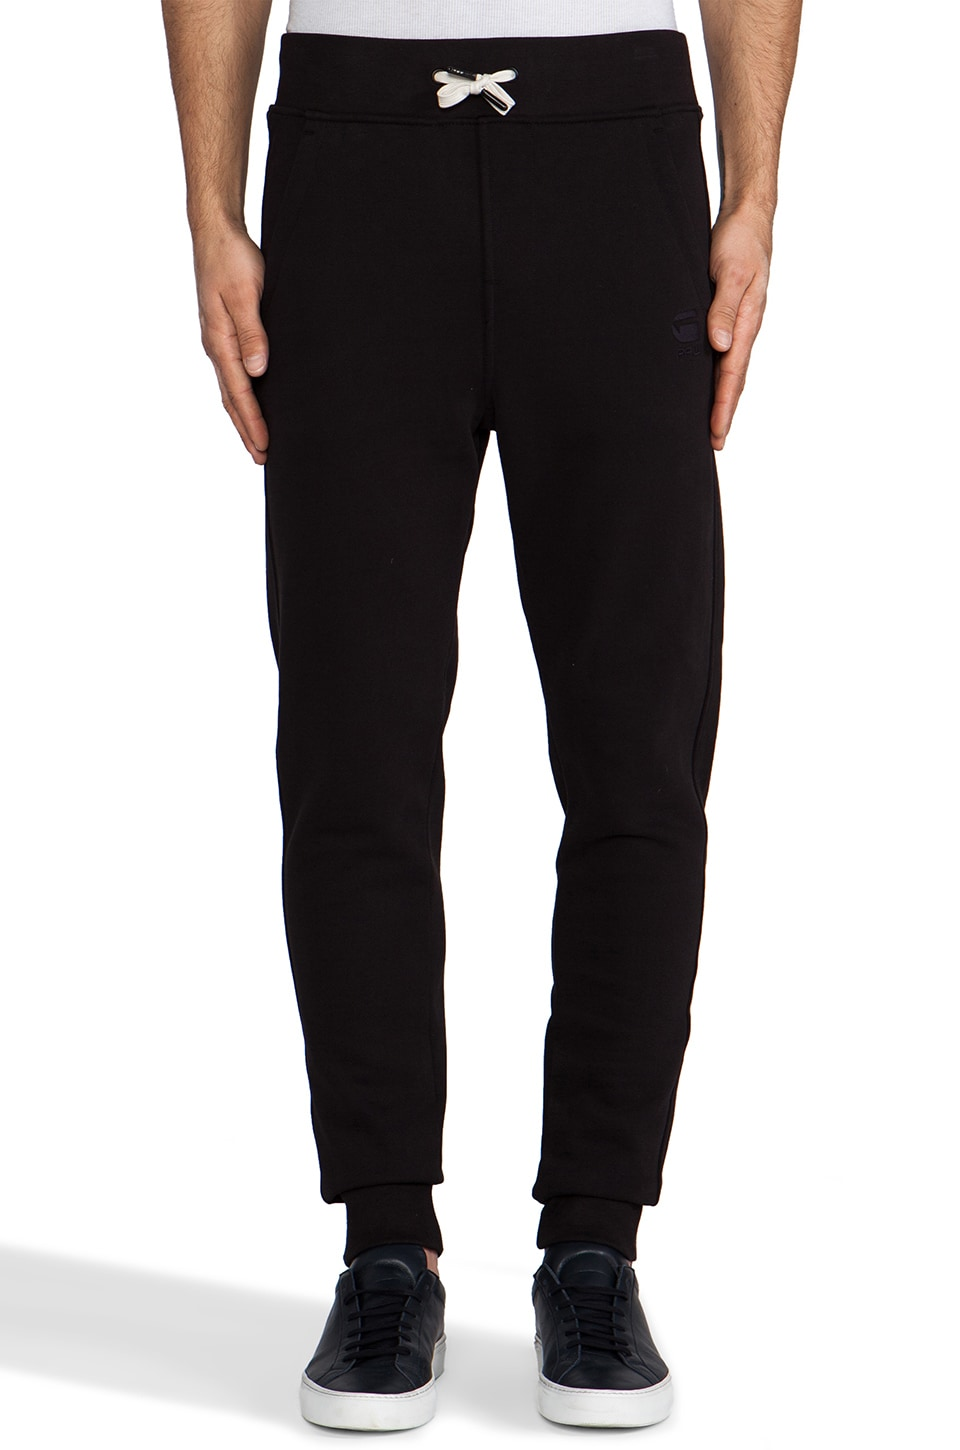 G-Star Navy Raw Sweatpant in Black